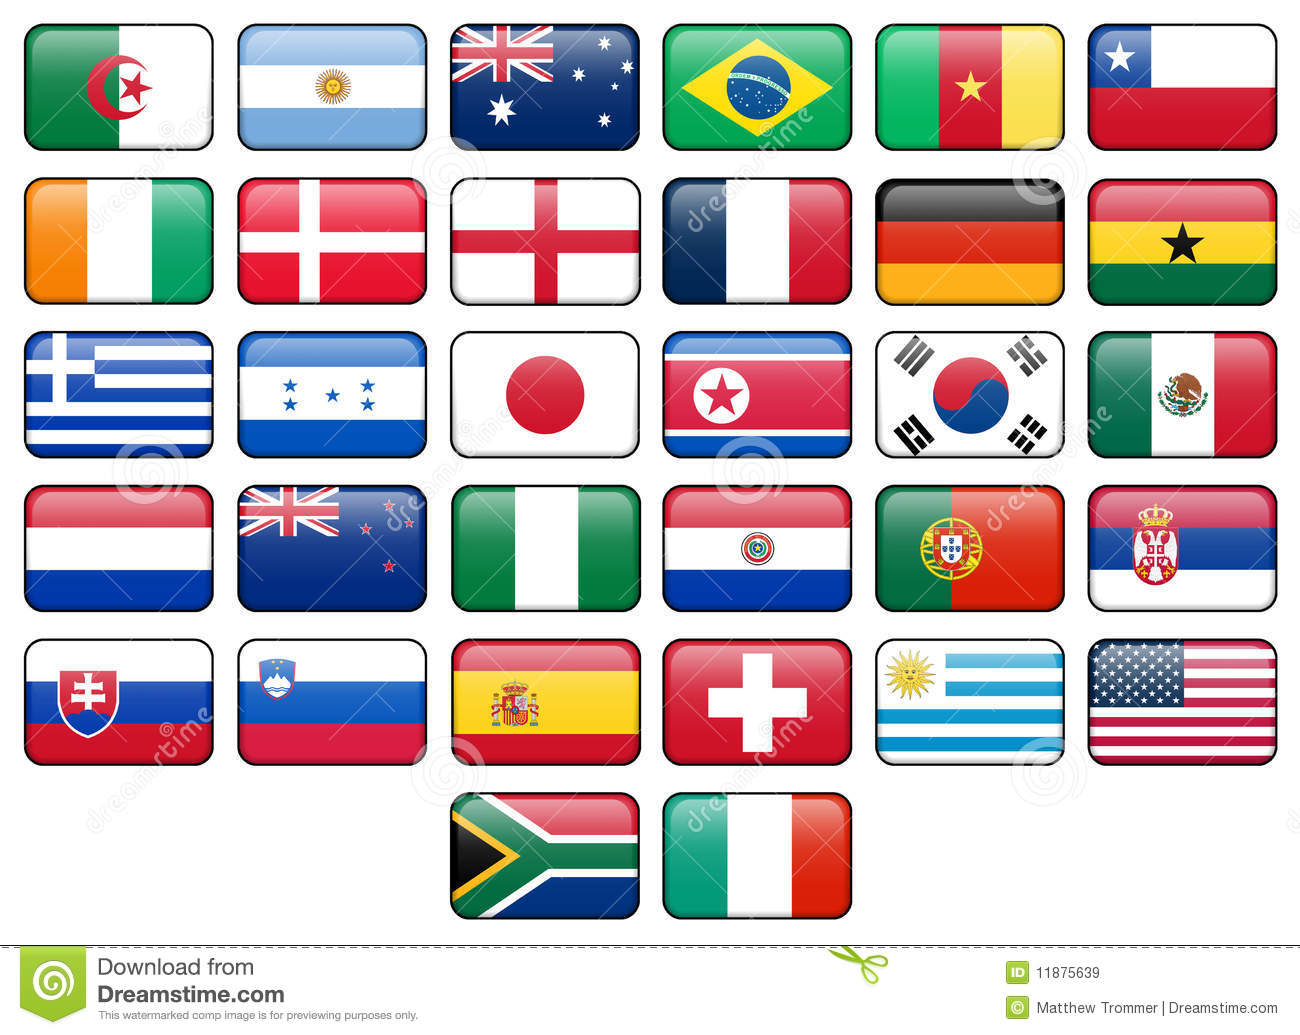 Flags of the world meaning and free images - country flags